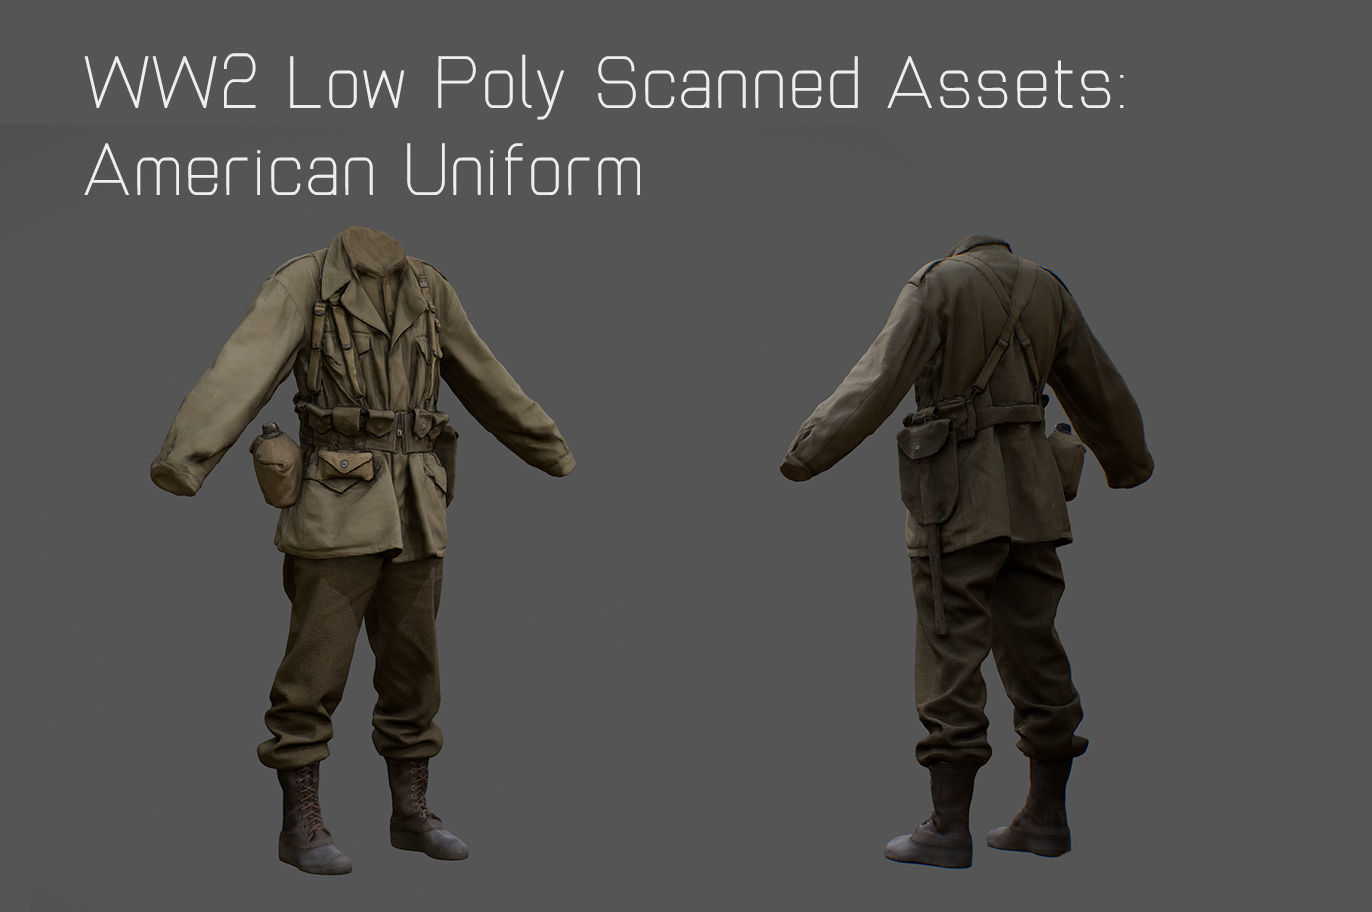 US American Uniform WW2 Photogrammetry Based 3D Scanned